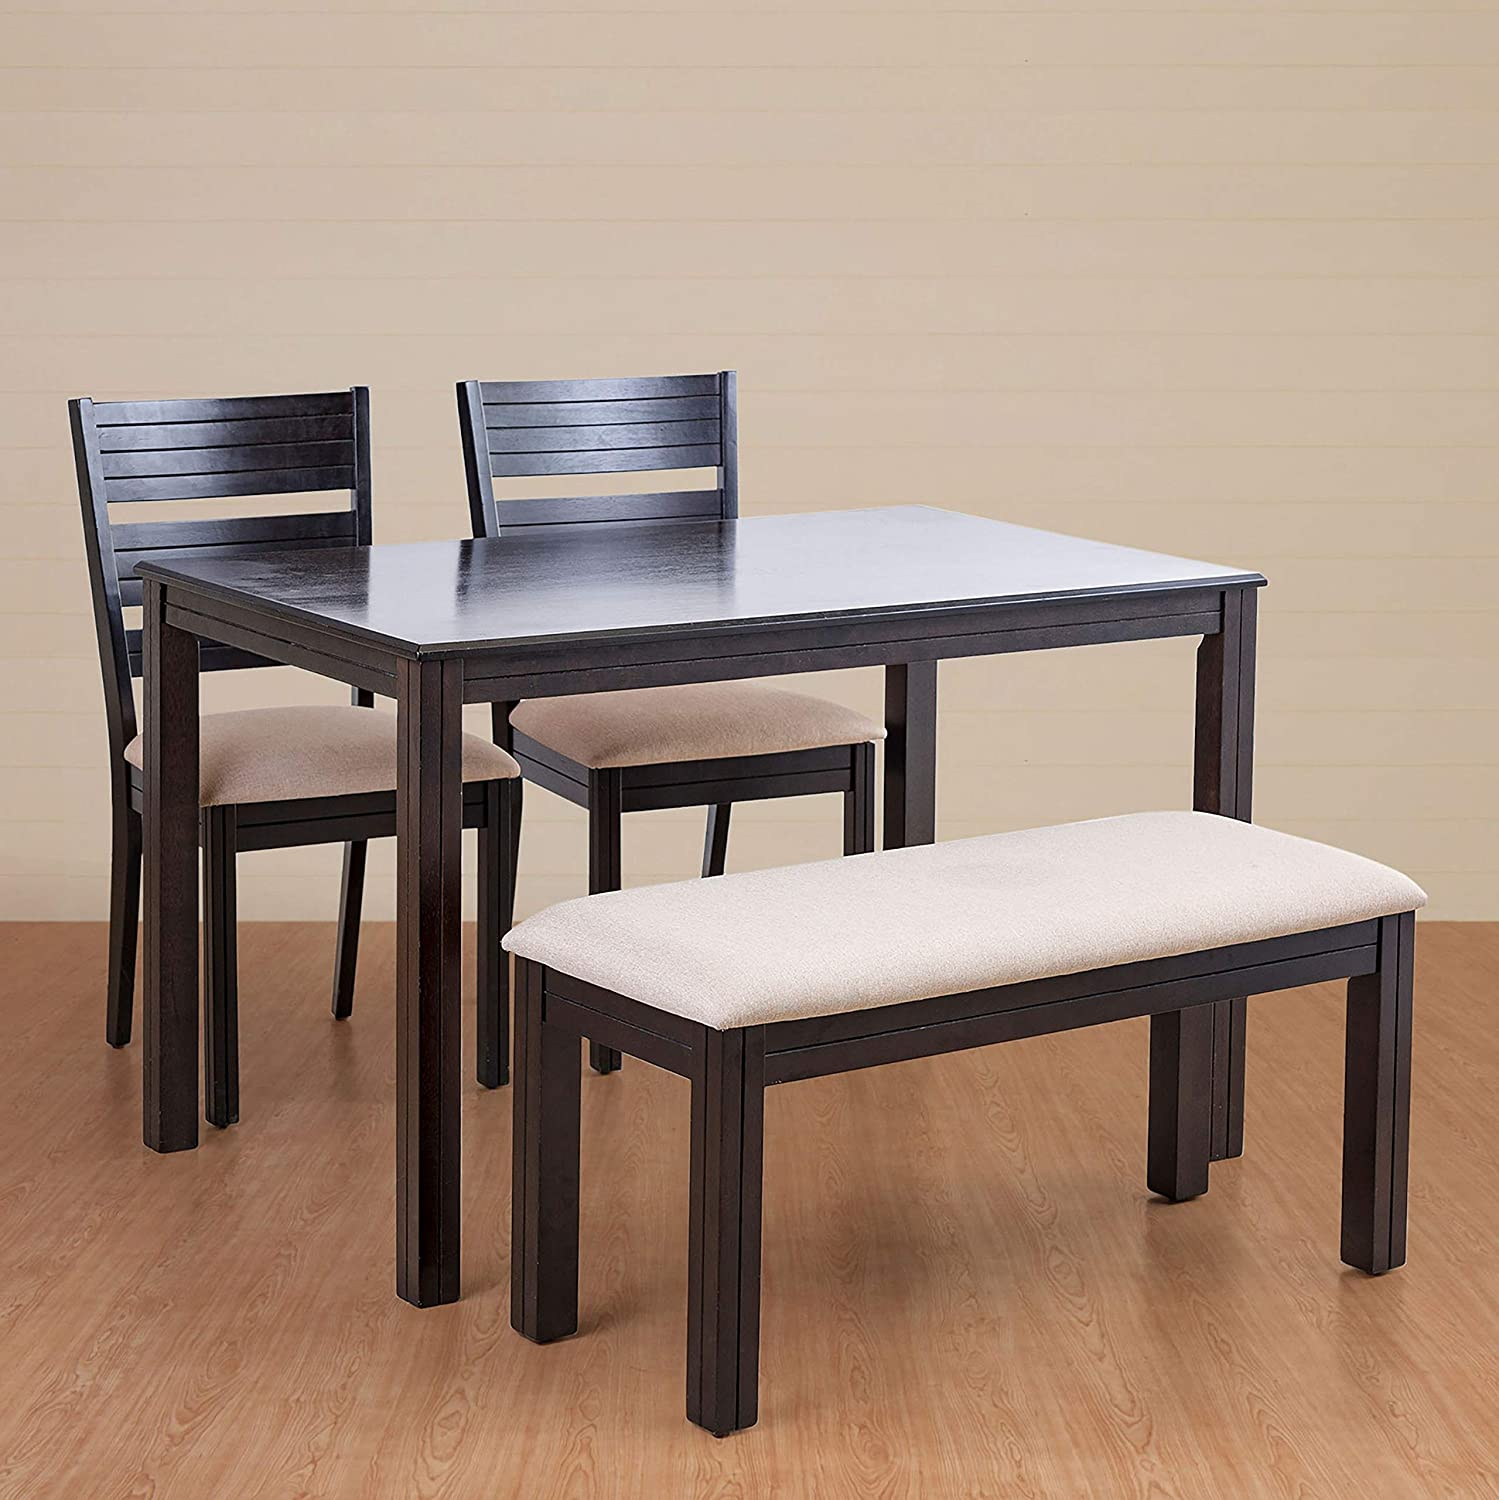 Home Centre Montoya 4 Seater Dining Table Set With Chair And Bench Amazon In Home Kitchen